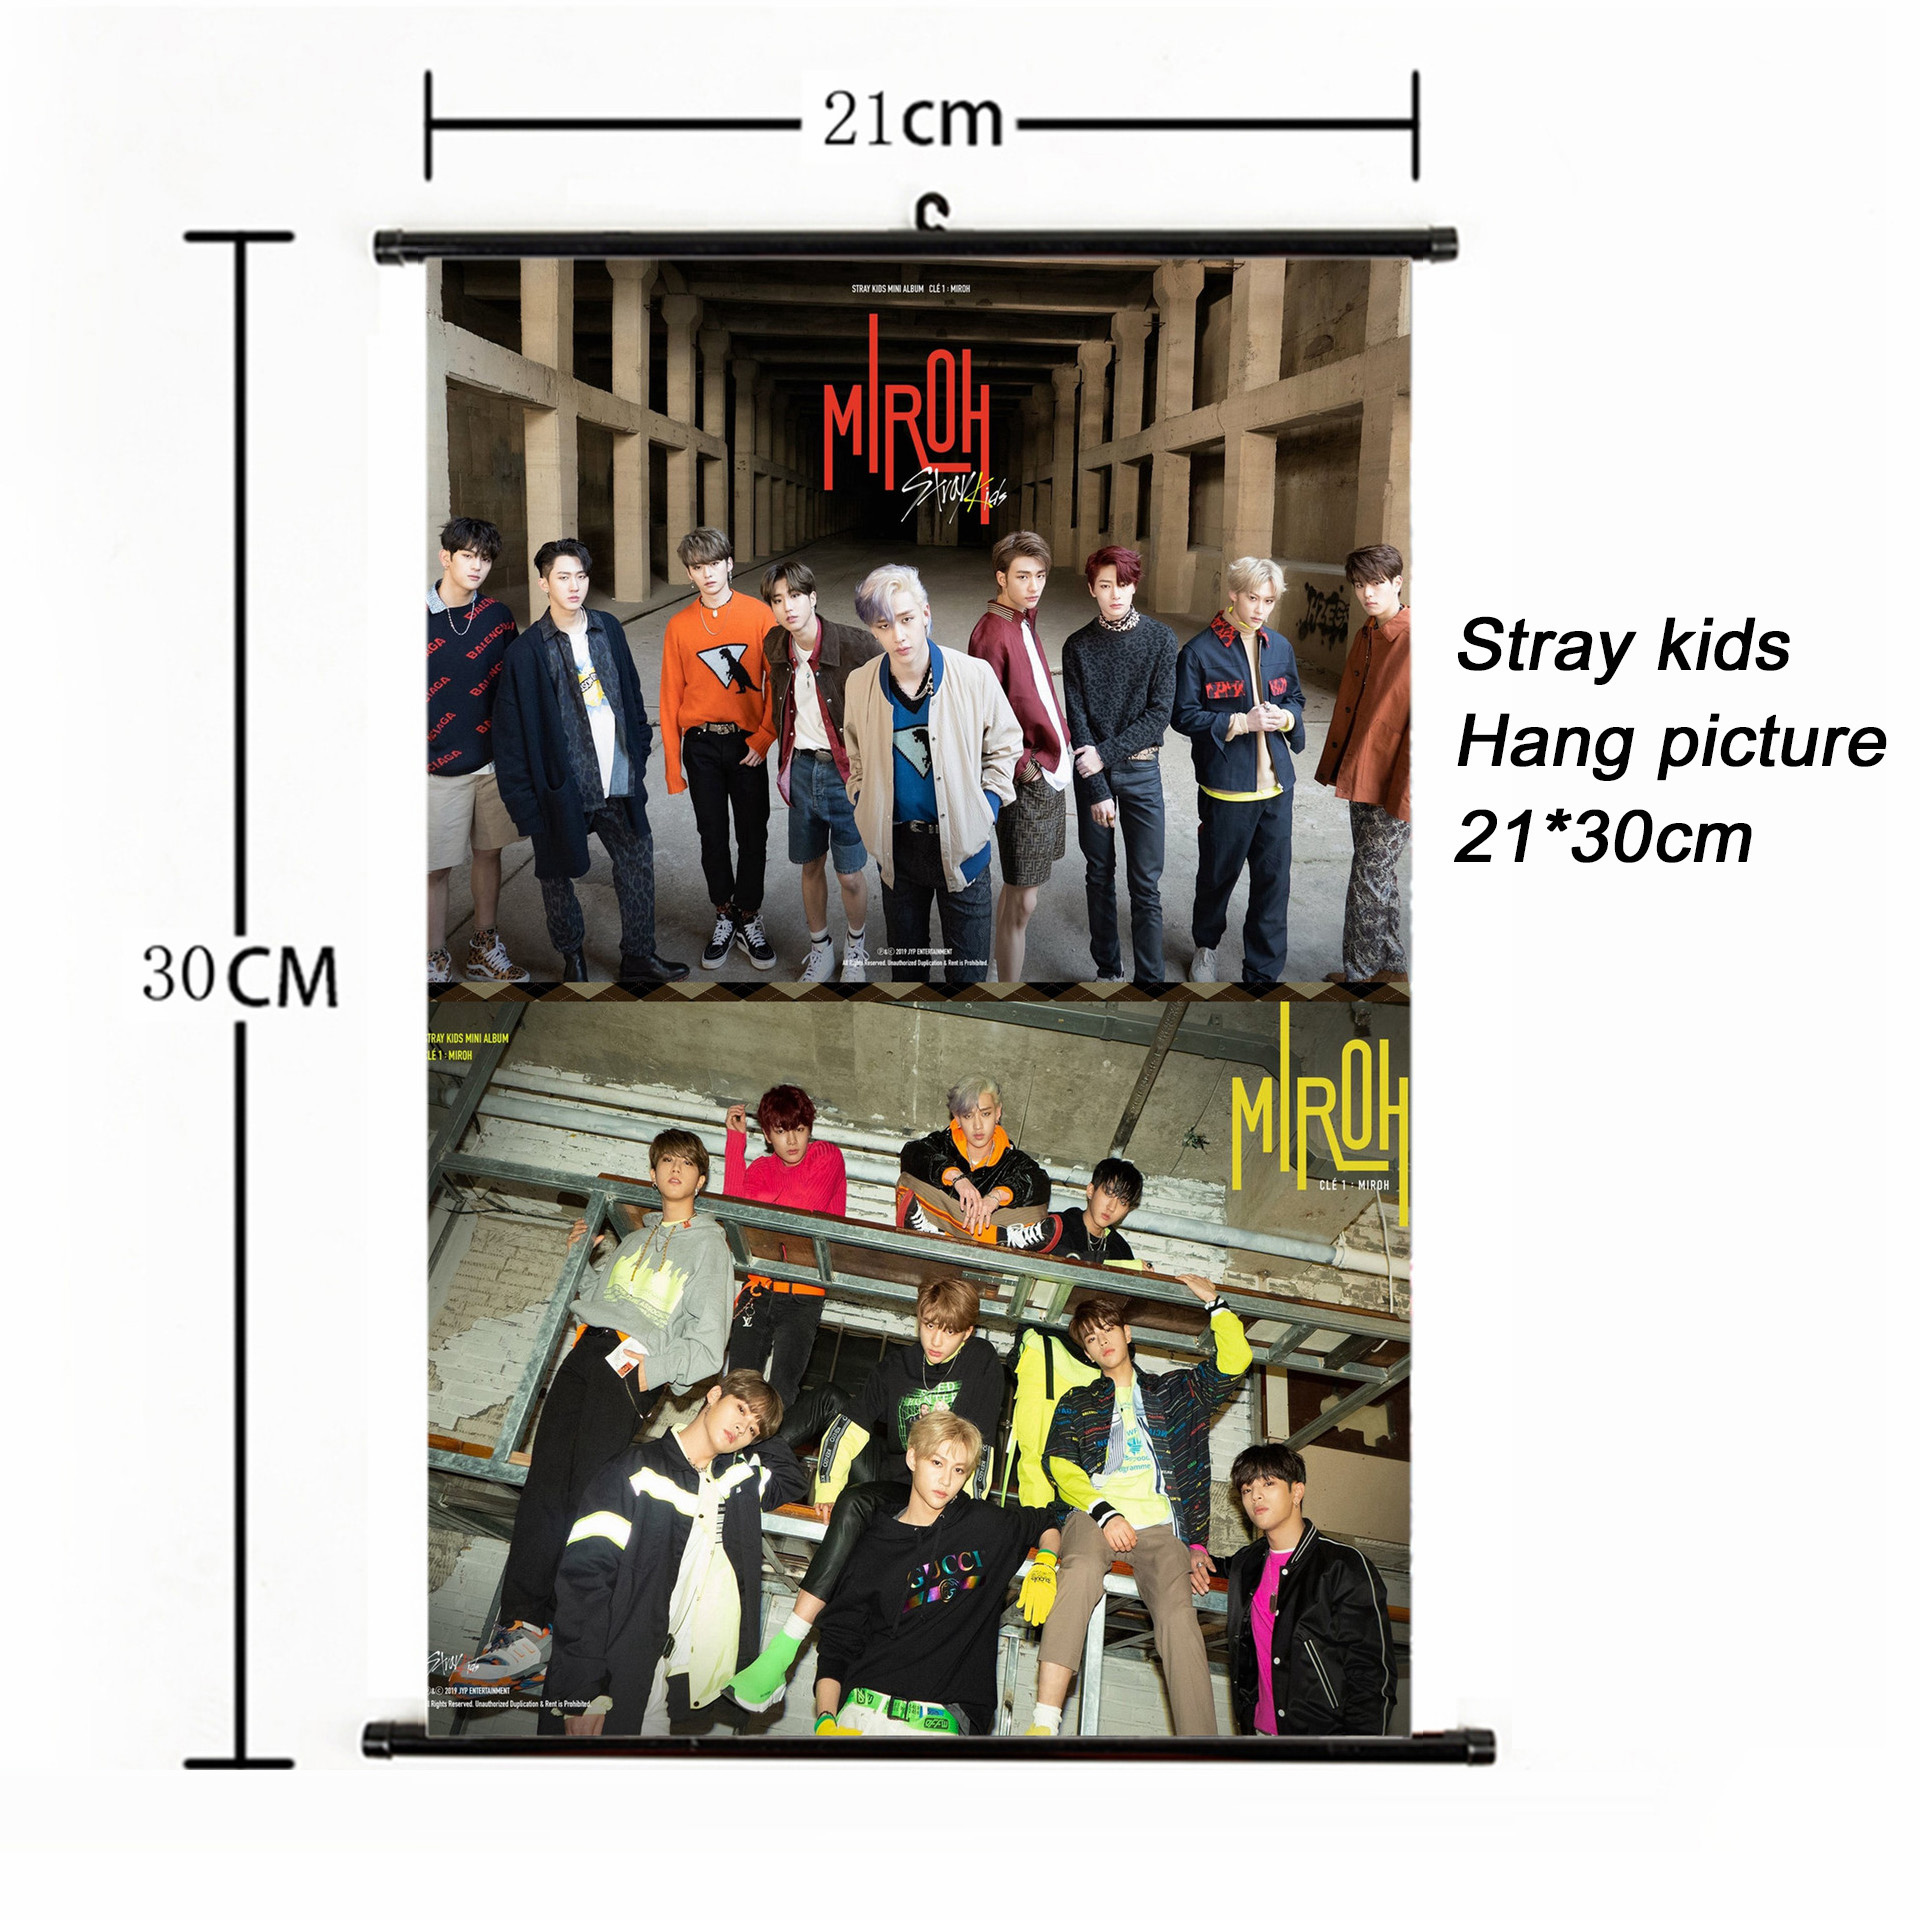 Fashion Kpop Stray Kids Hang painting 21 30cm poster stray kids album photocard kpop poster for fans collection stationery set in Stationery Set from Office School Supplies